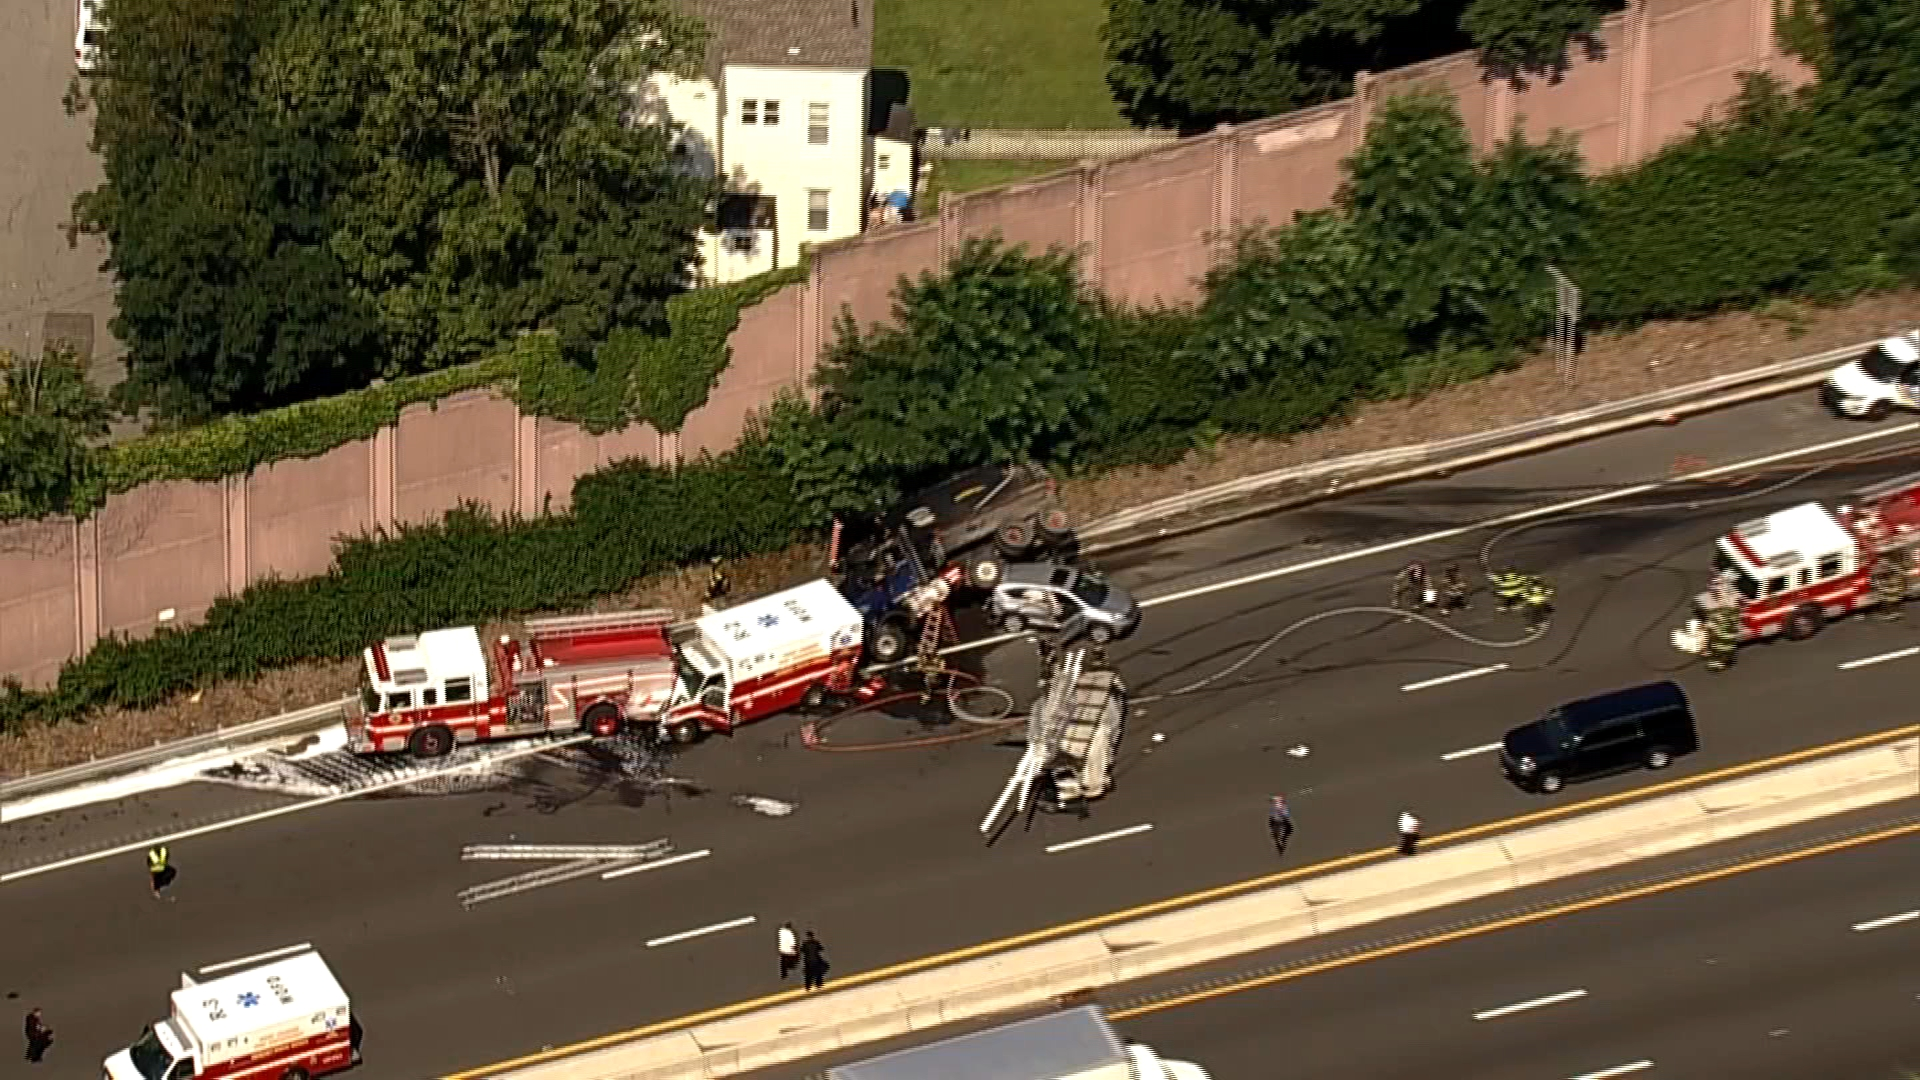 Cop SUV, Ambulance, Fire Truck in Twisted NJ Highway Wreck